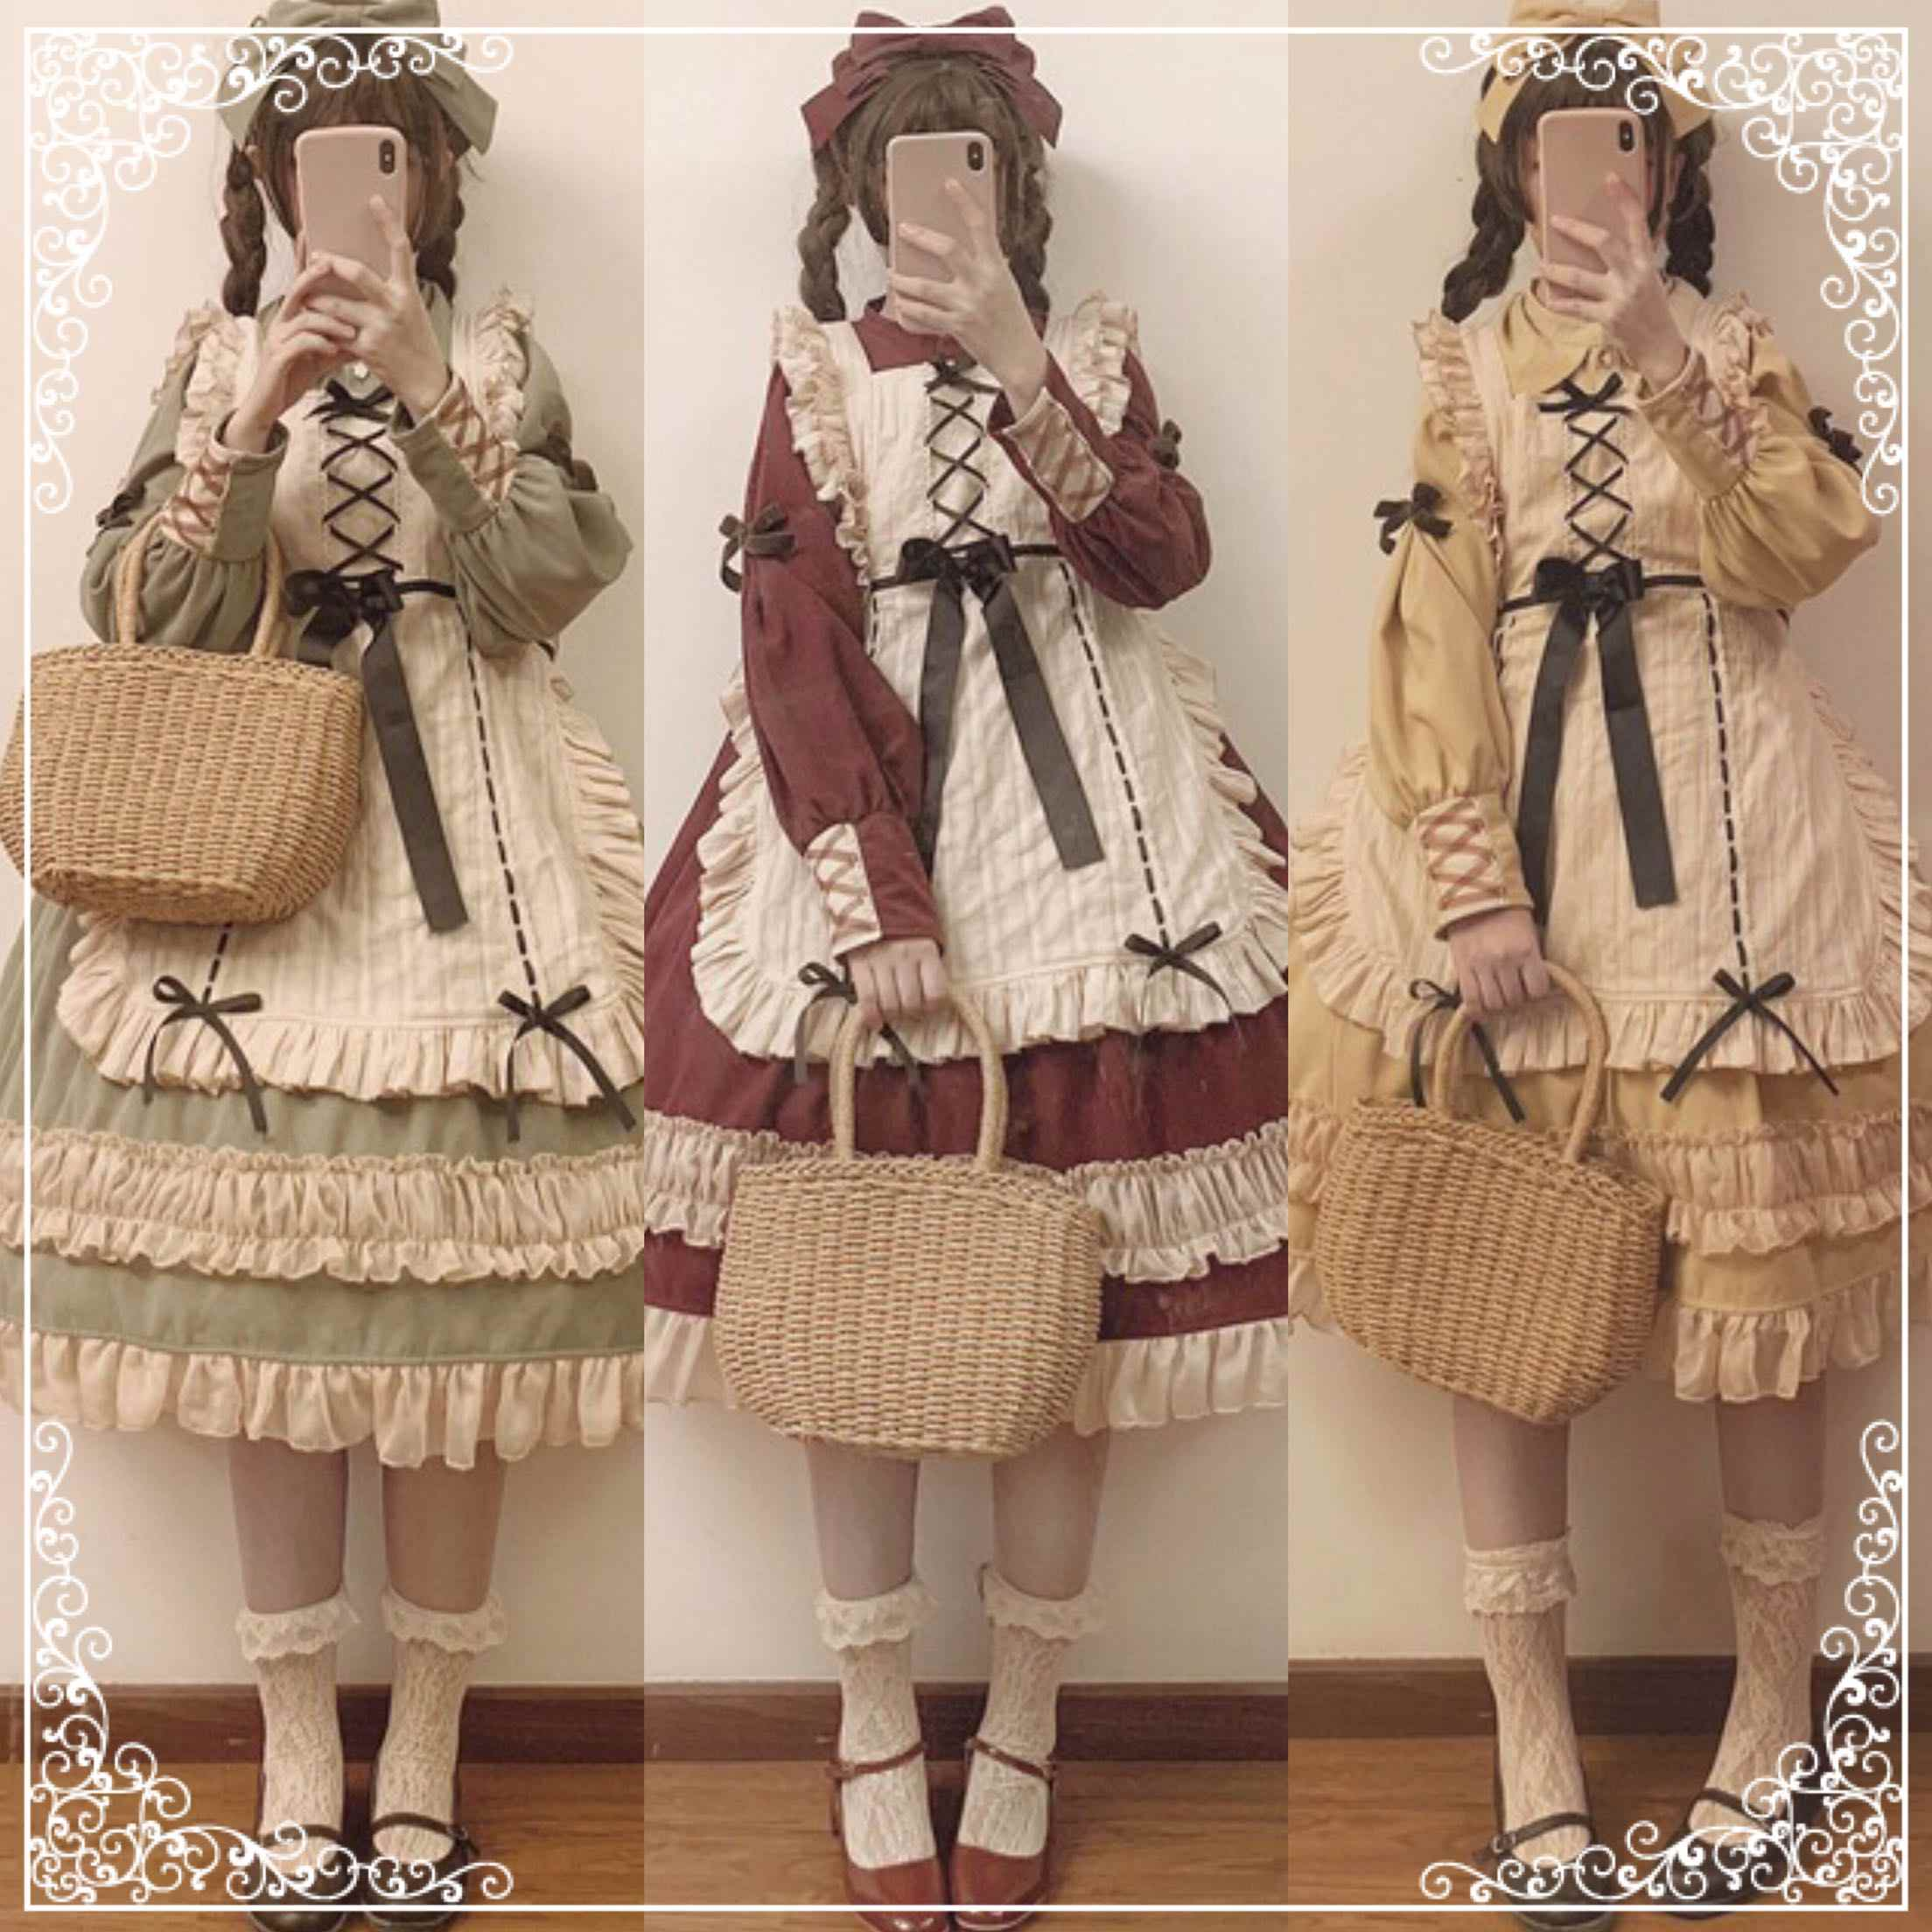 Japanese sweet lolita dress vintage bandage lace bowknot peter pan collar victorian dress kawaii girl gothic lolita op loli cos